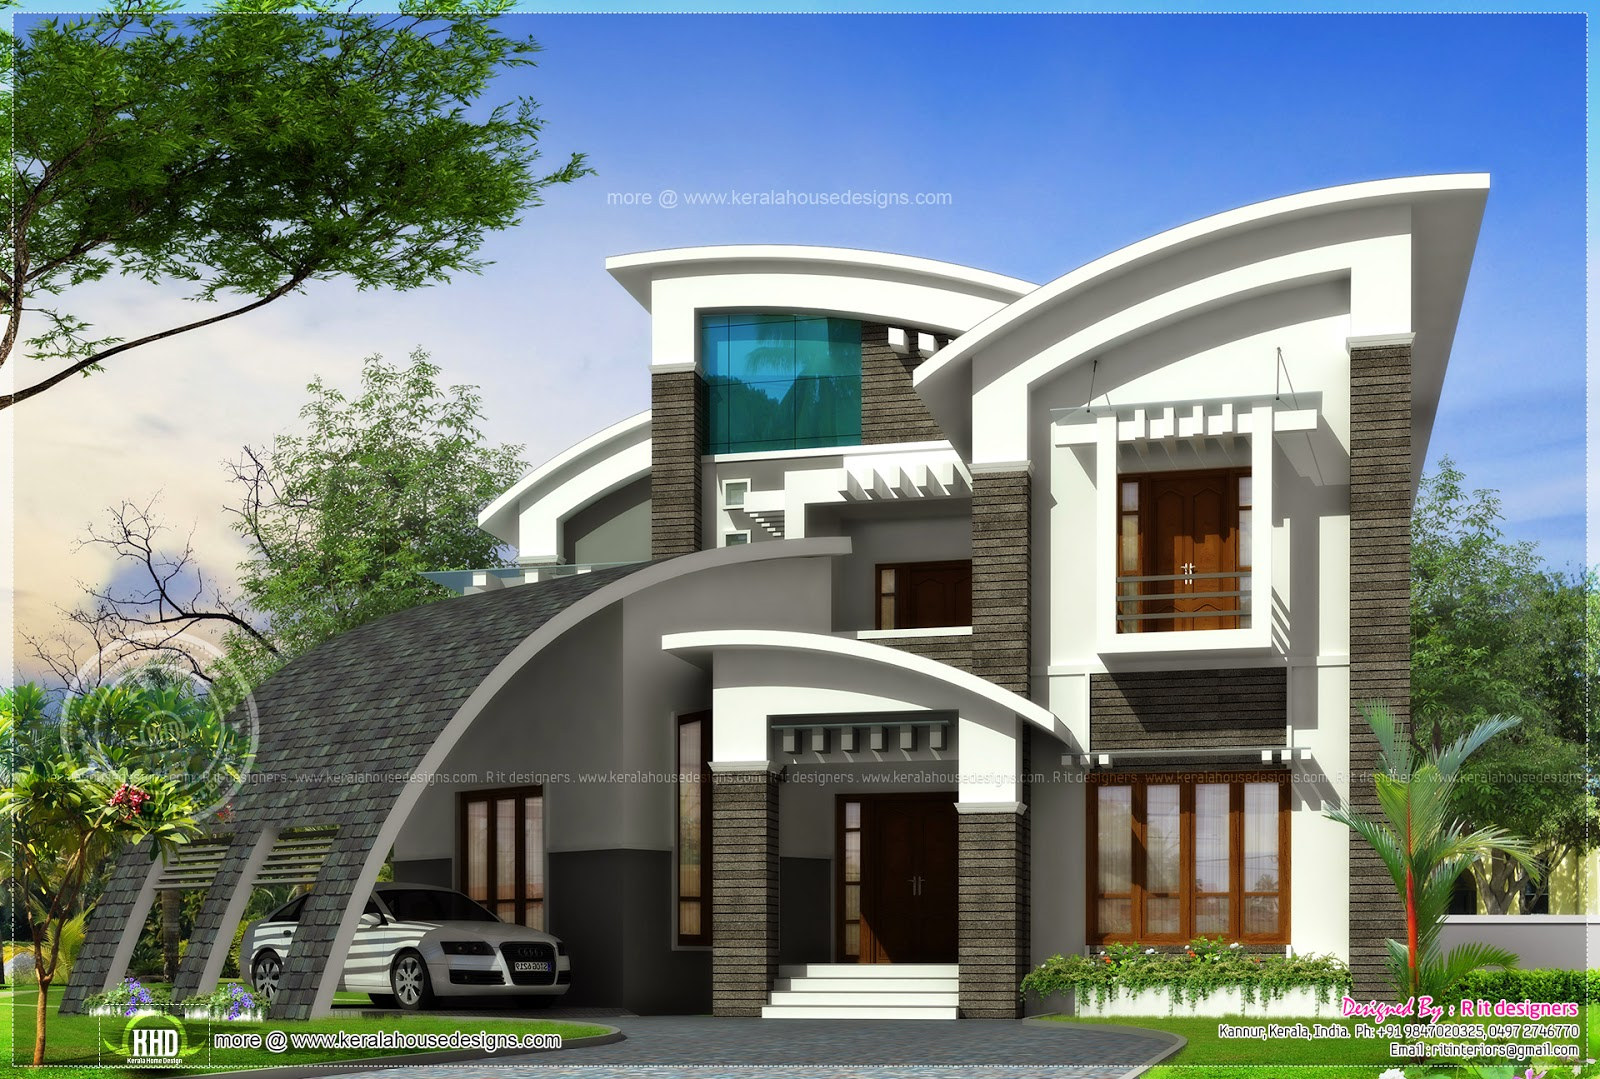 Super luxury ultra modern house design kerala home for Luxury farmhouse plans